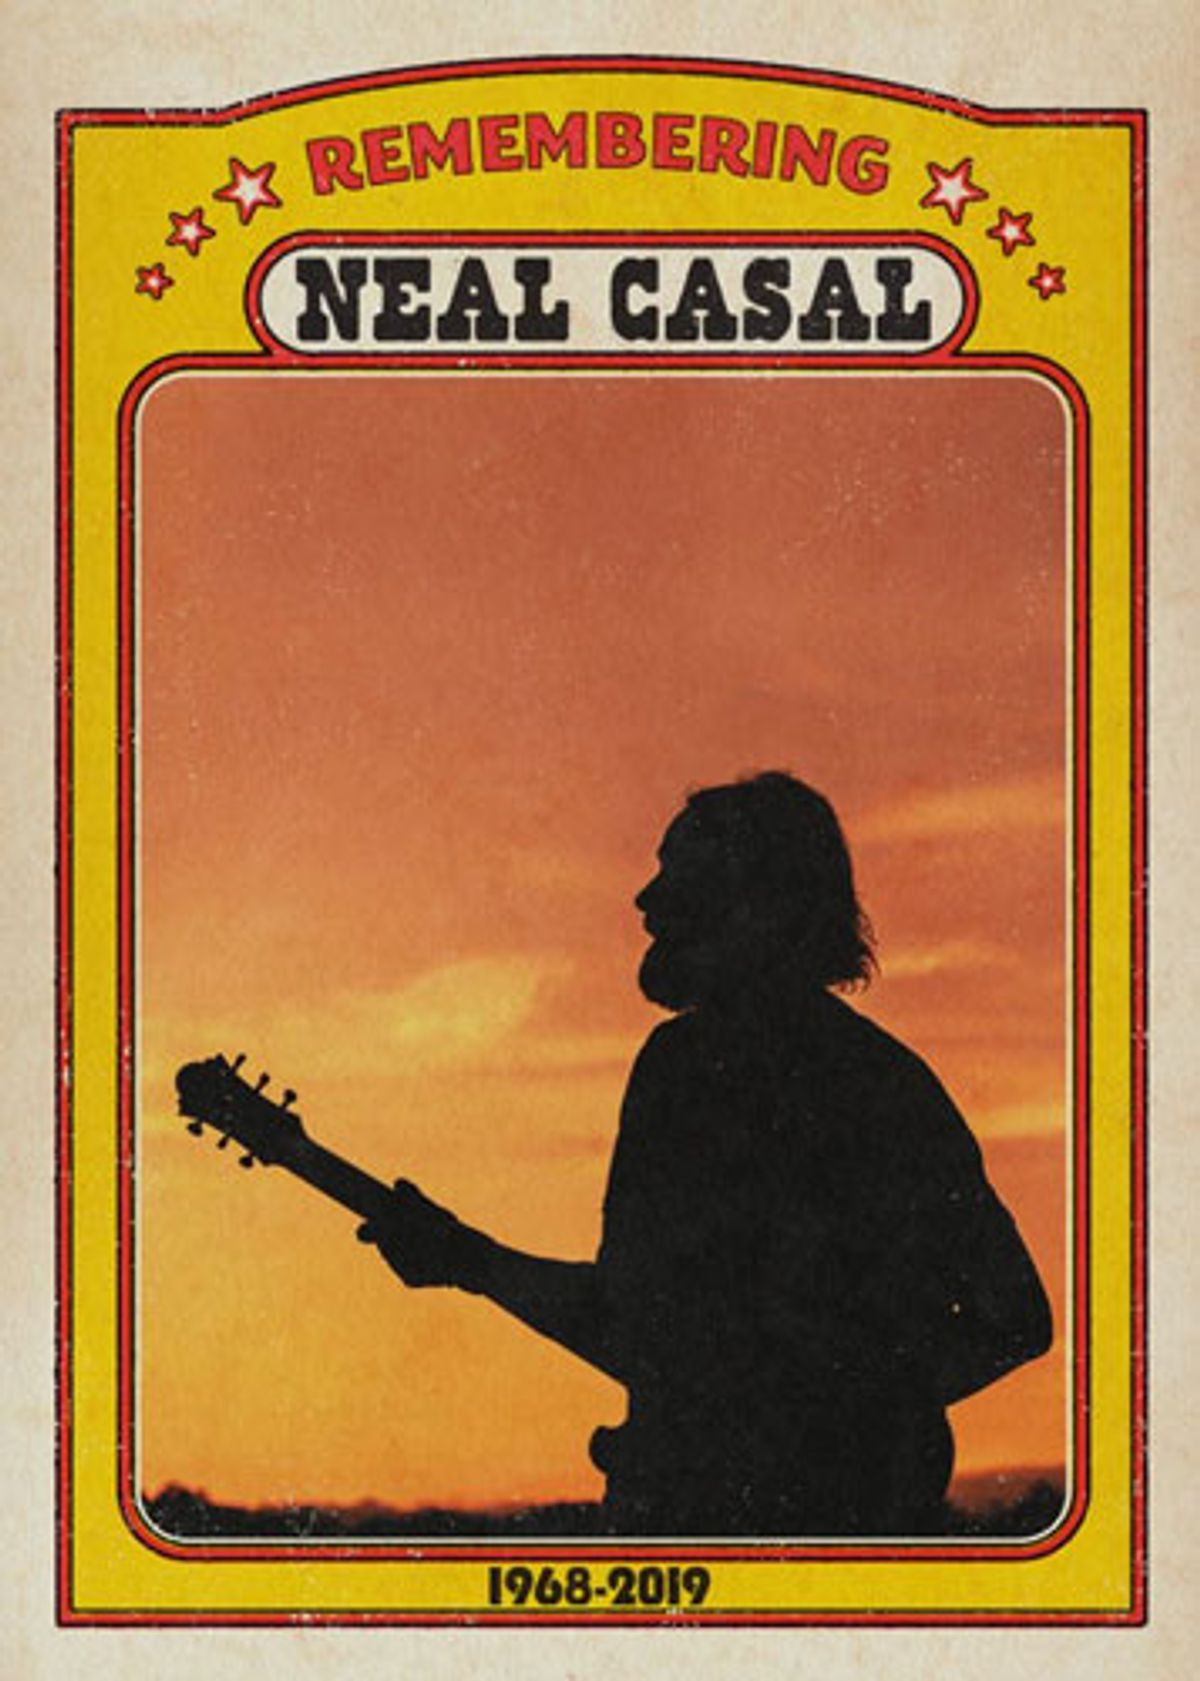 Neal Casal Memorial Concert Announced For September 25 At The Capitol Theatre